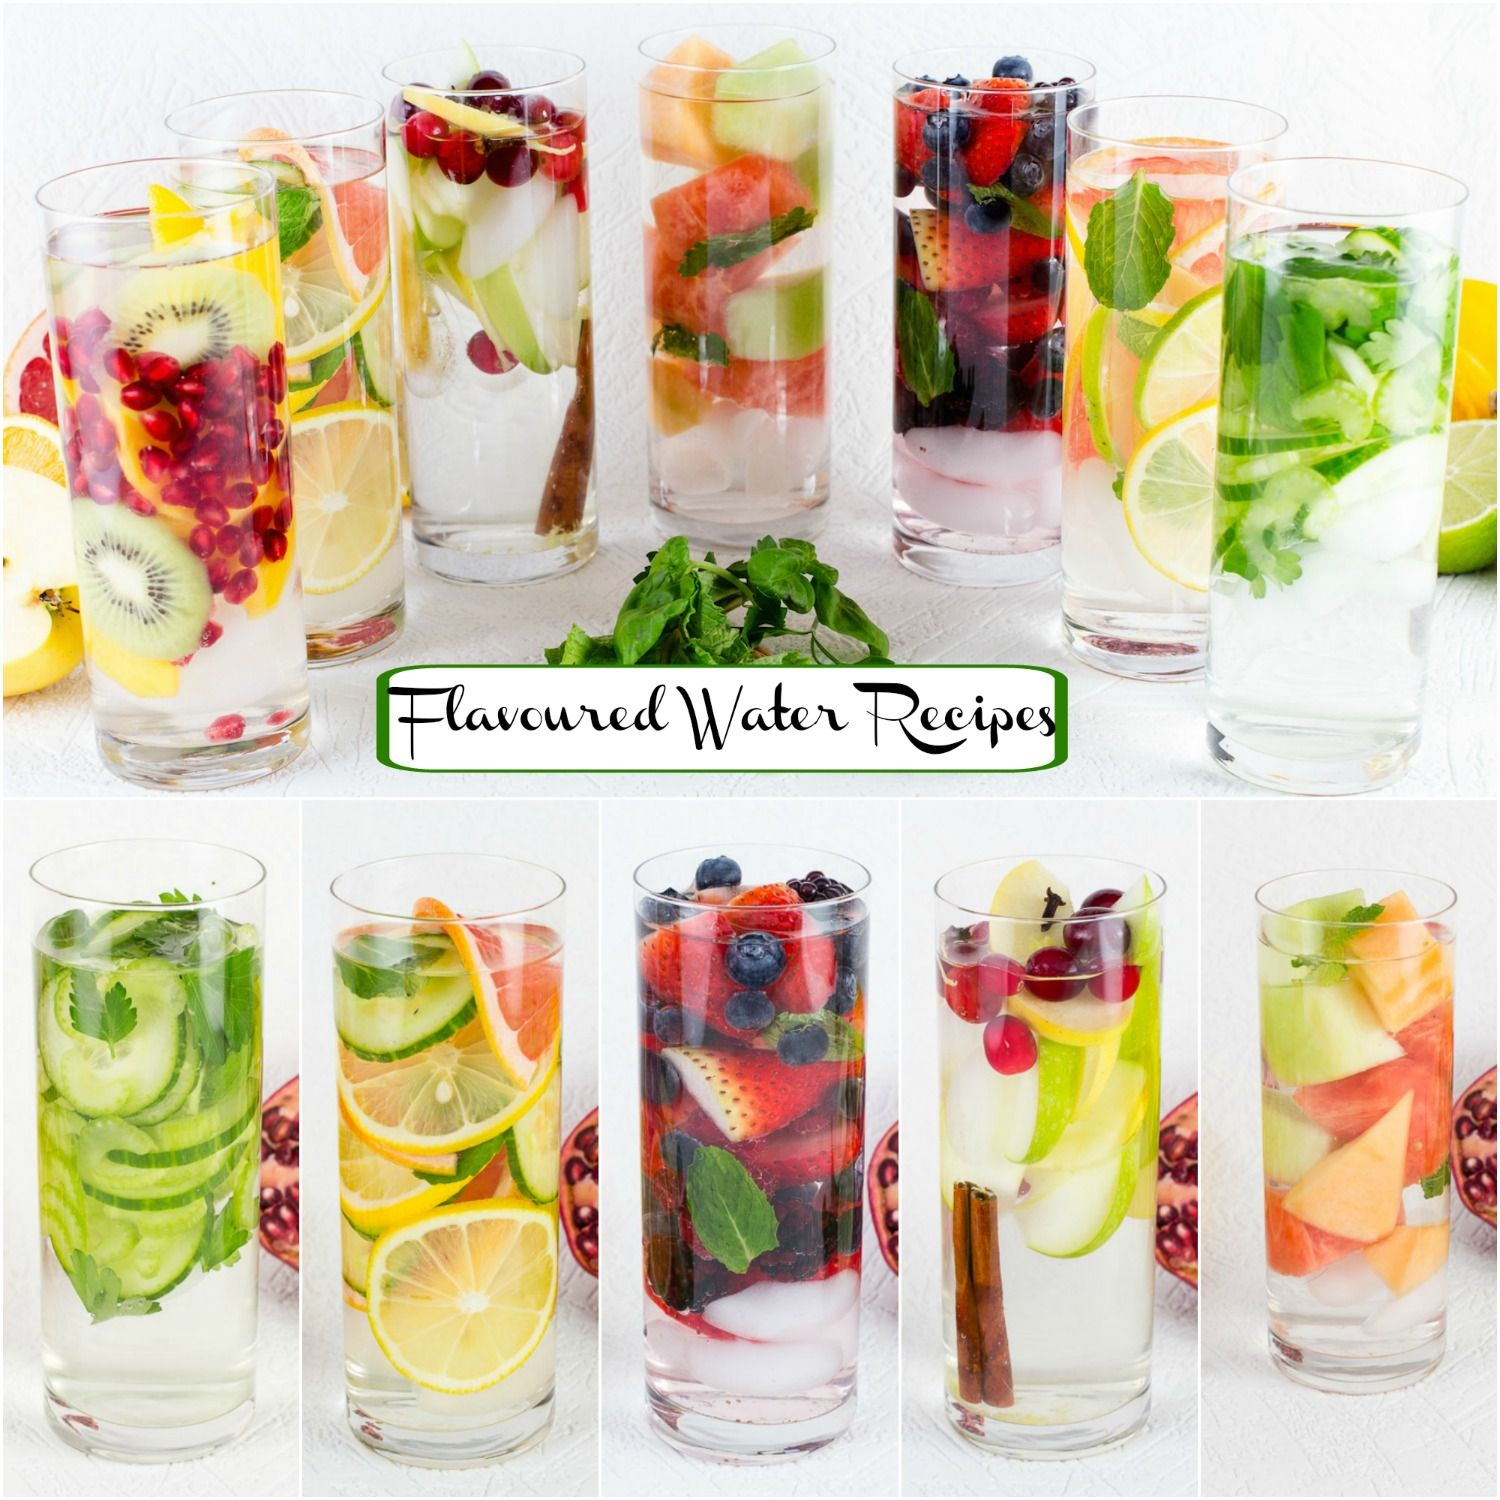 Simple, Fresh Fruits, Vegetables And Herbs In These Diet